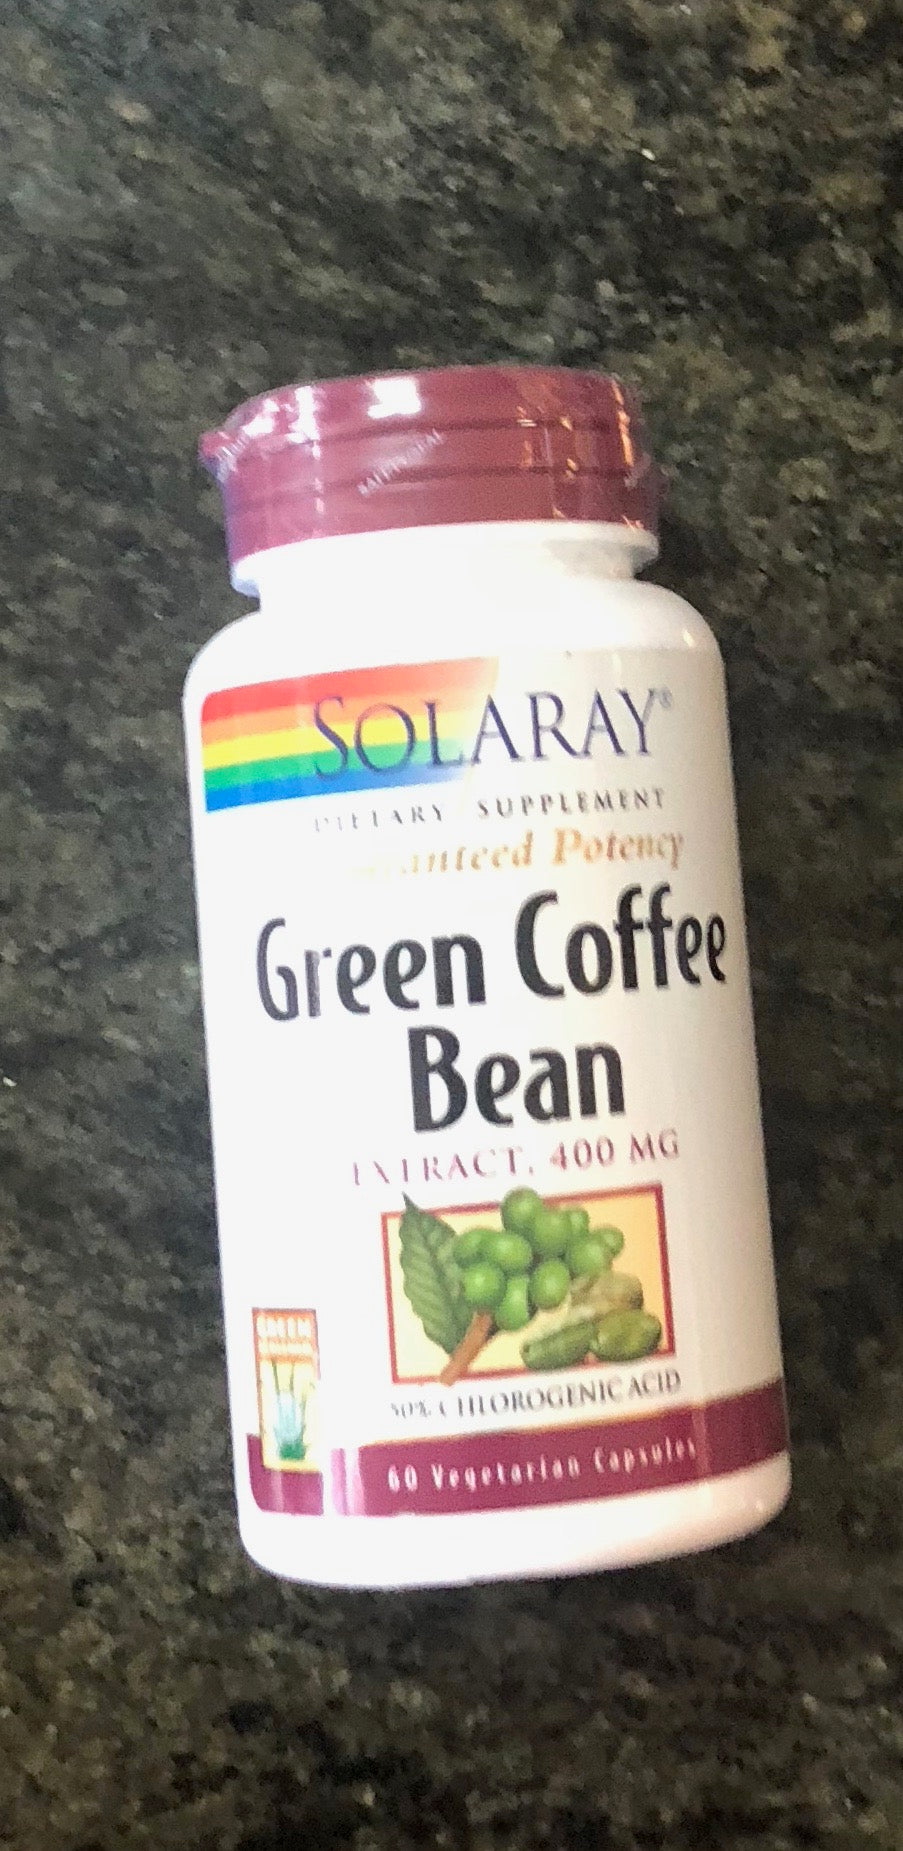 Solaray Green Coffee Bean Extract